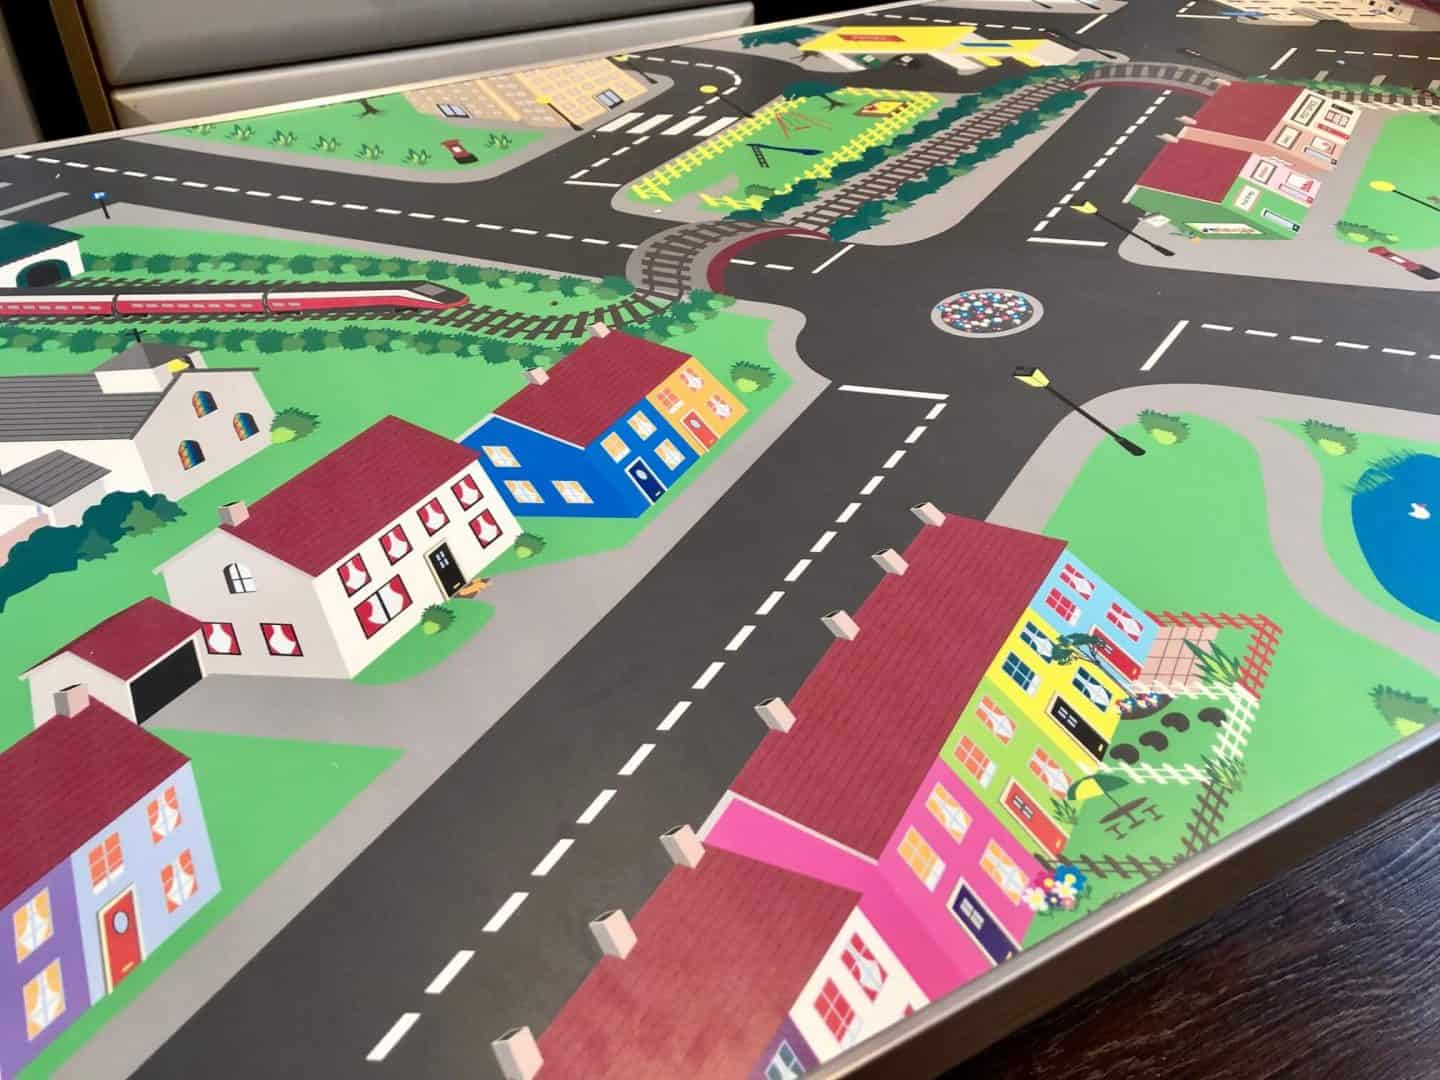 Town design on the activity table